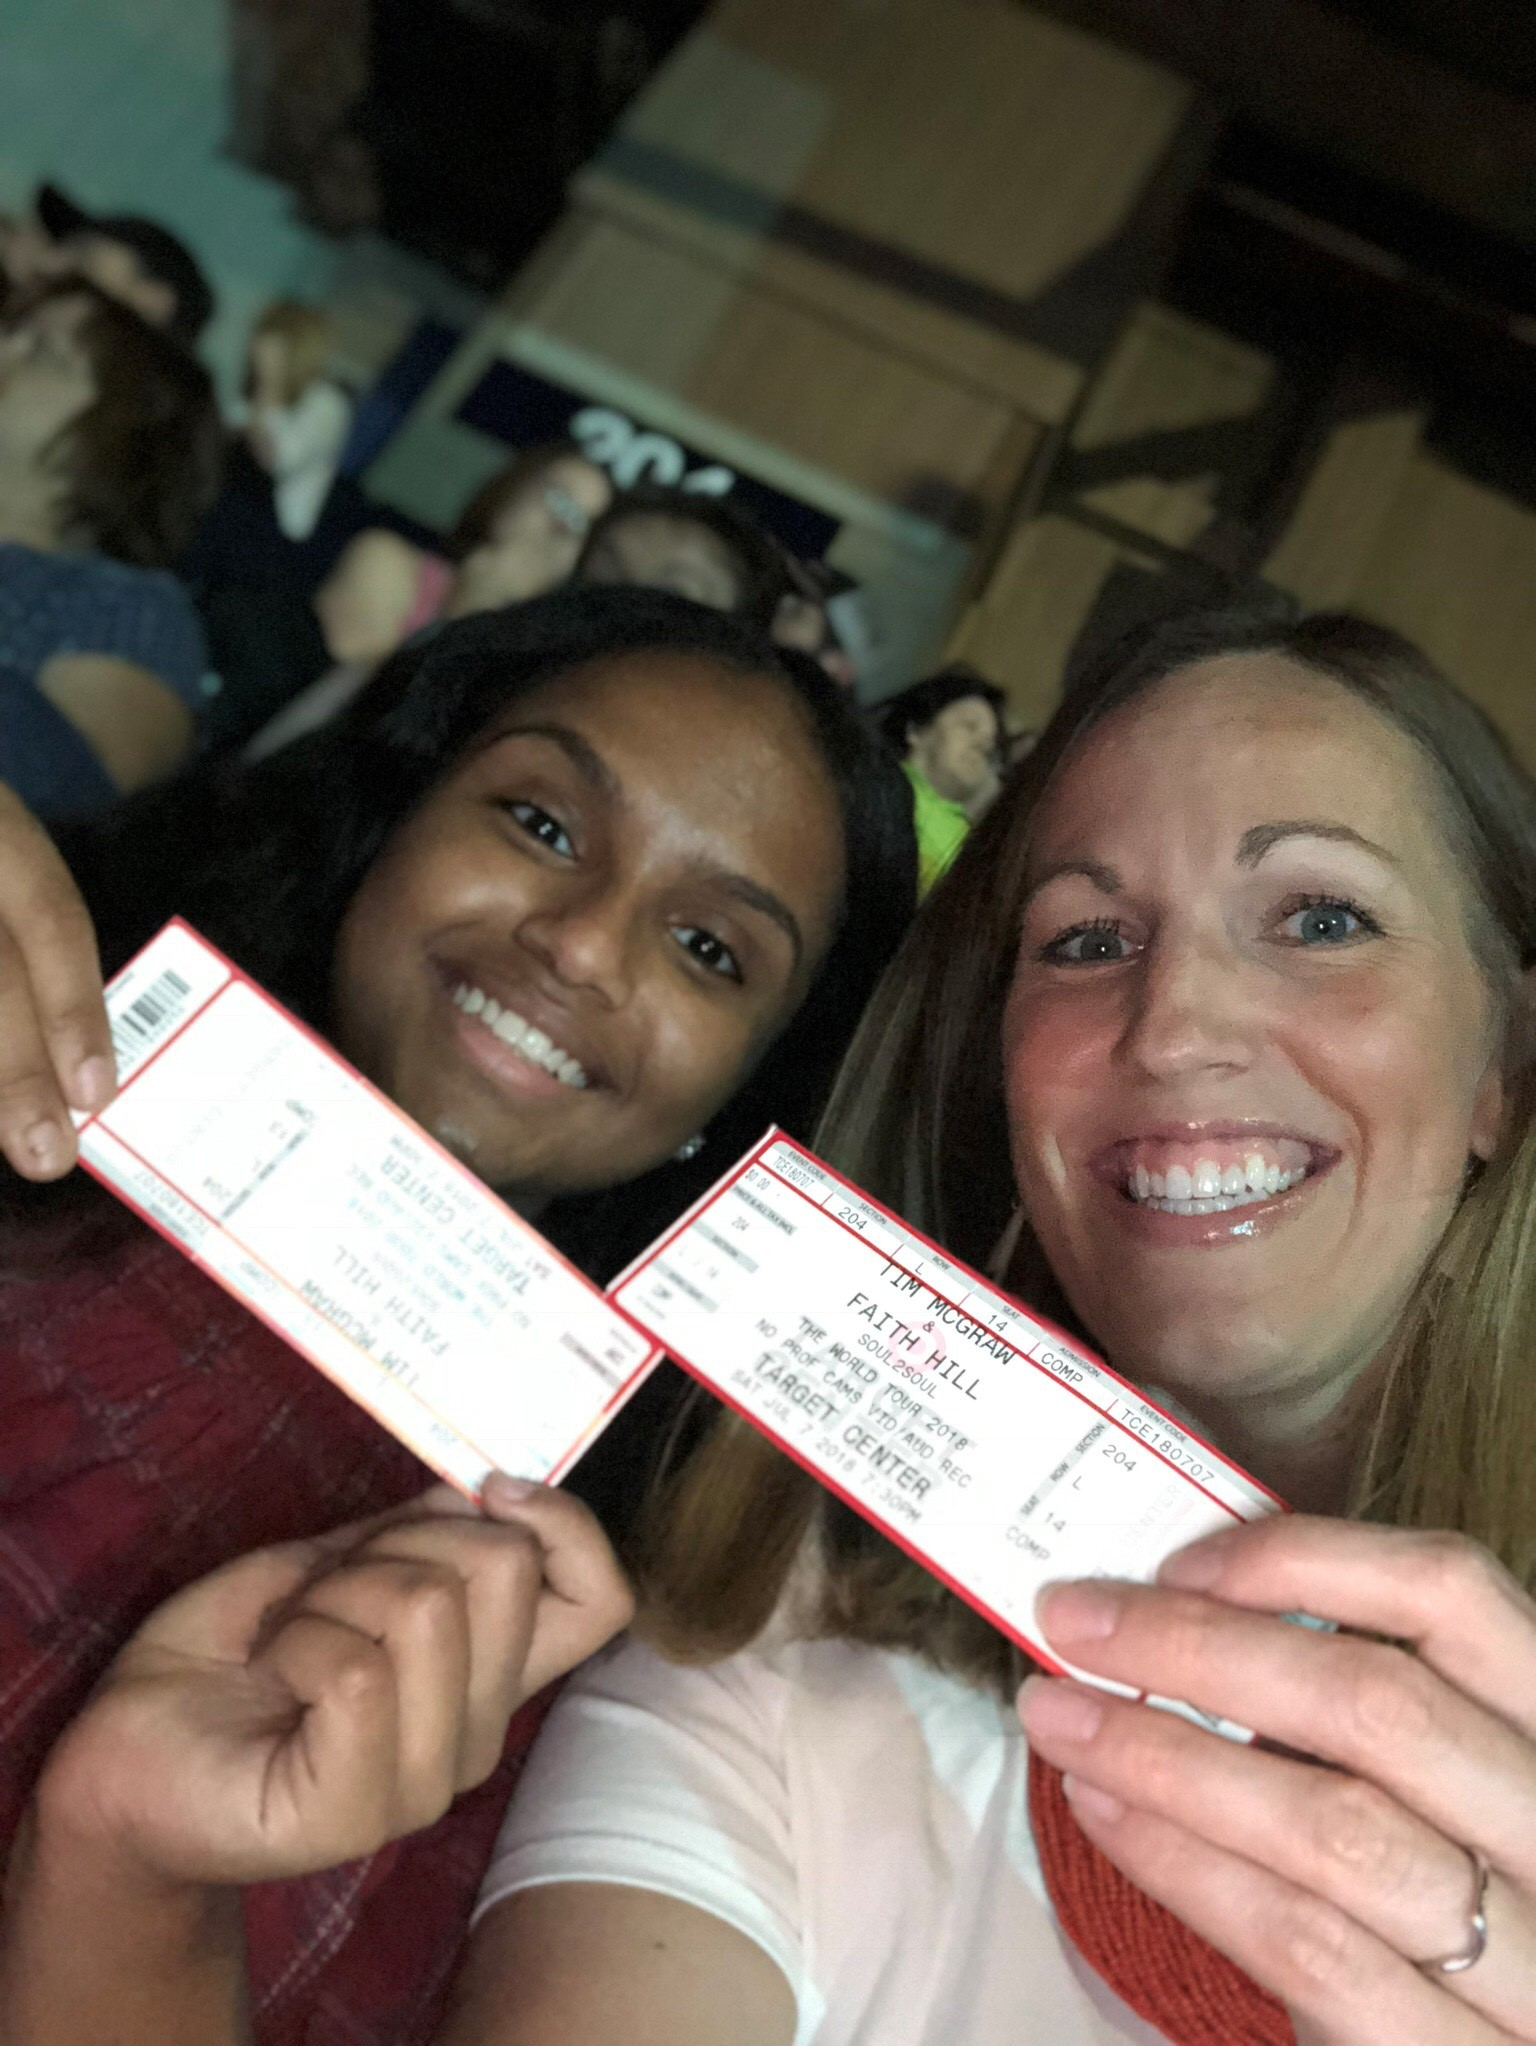 Allison & Samiya Tim McGraw and Faith Hill concert 7_2018b.jpg